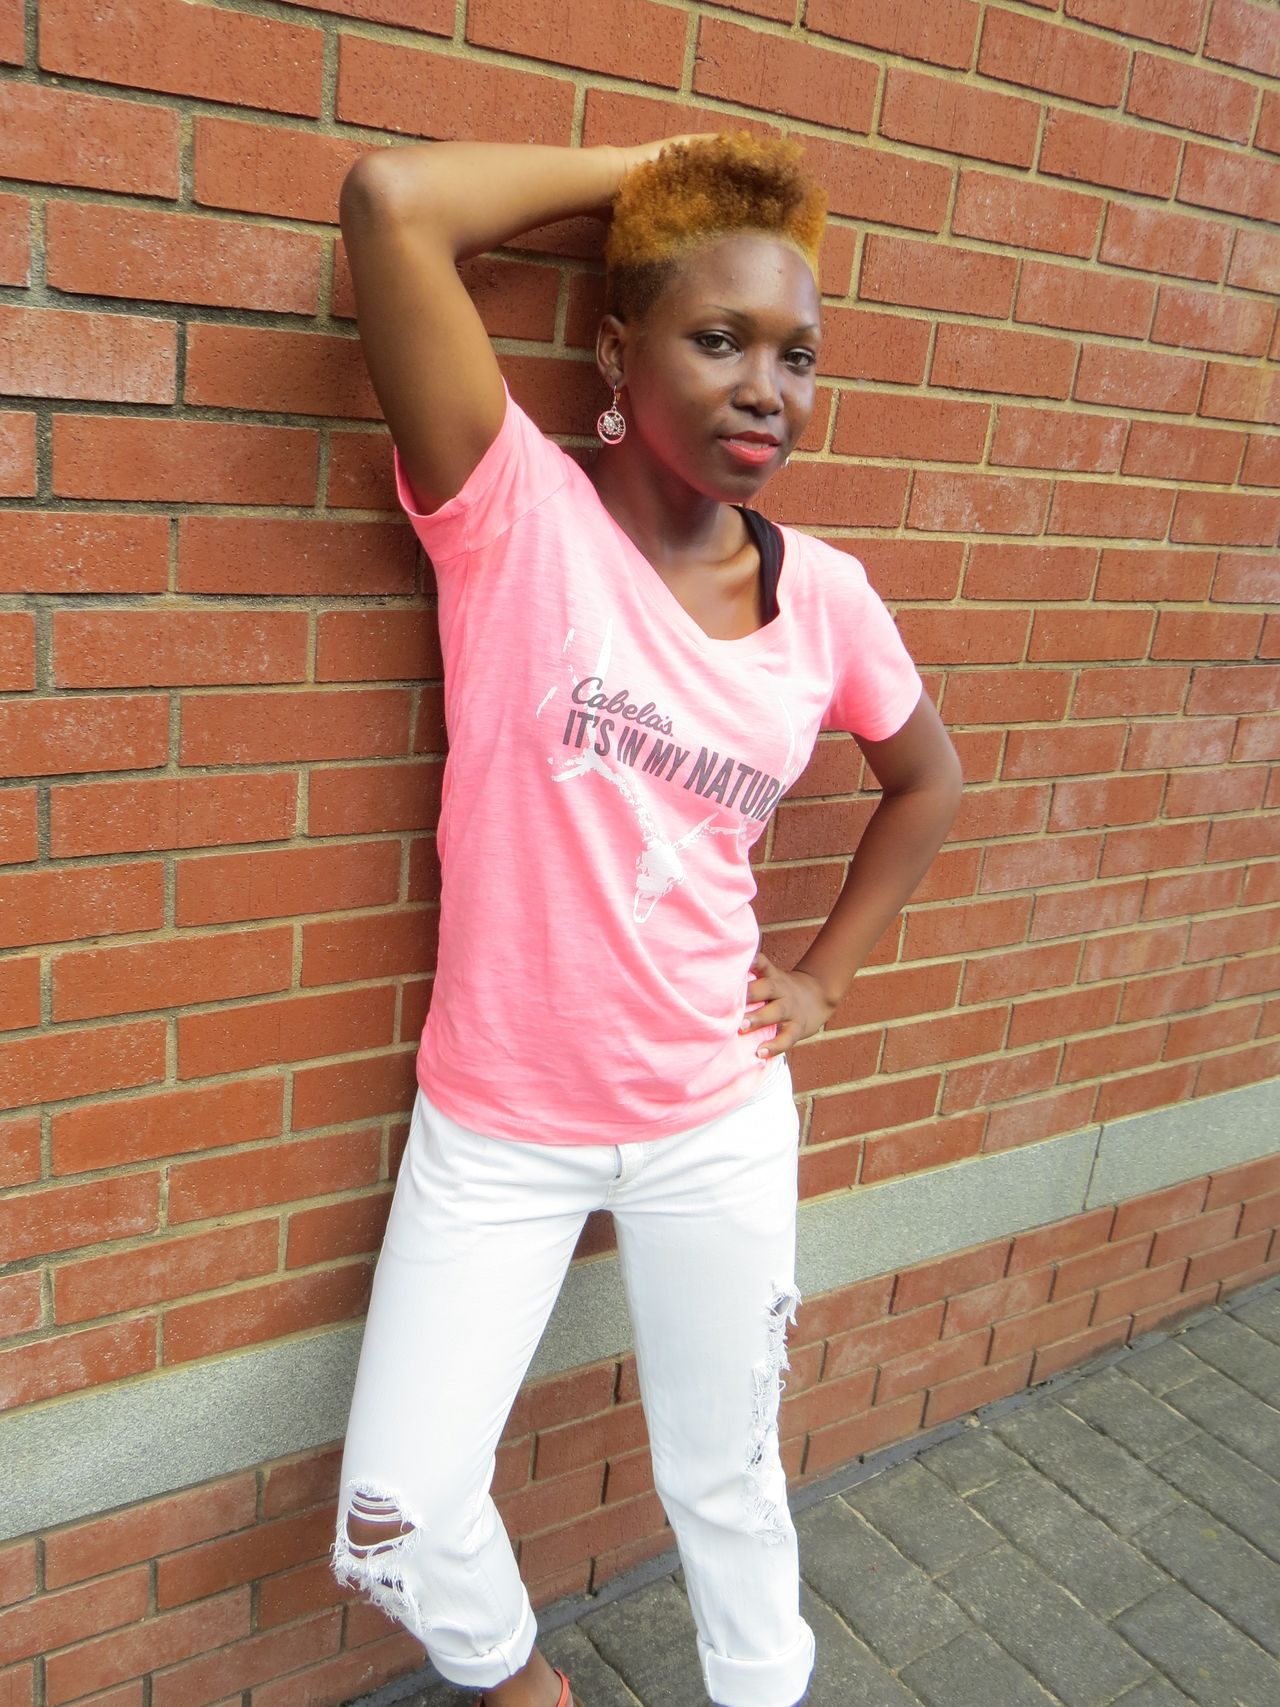 Brick Wall Day One Person Outdoors People Pink Color Portrait Standing